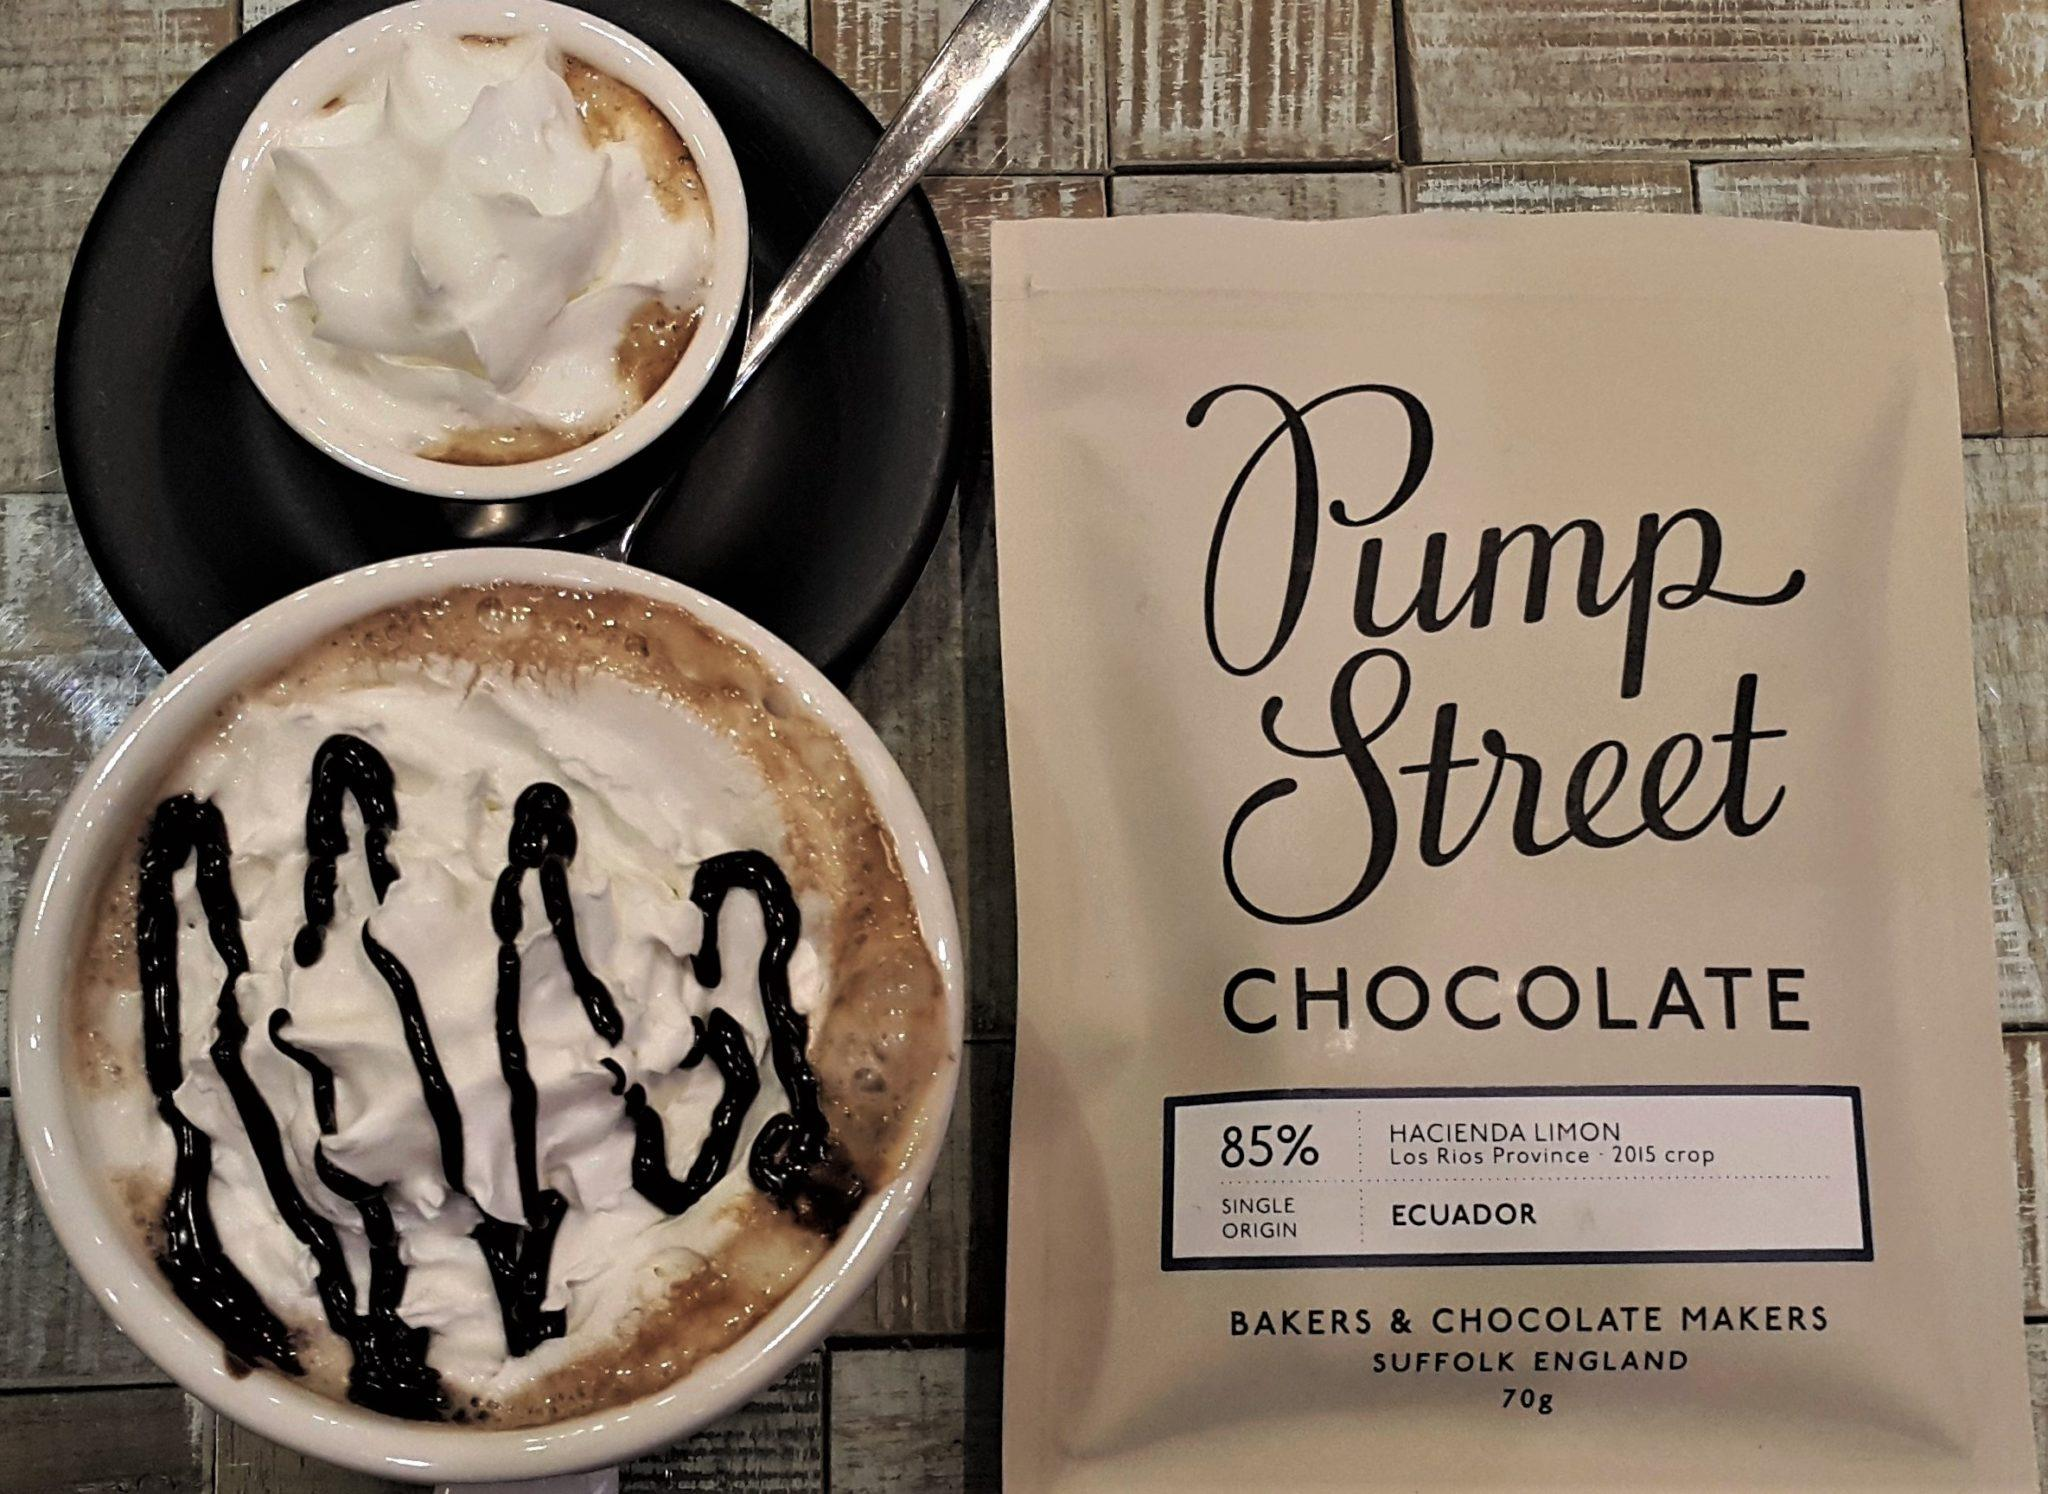 Pump Street Bakery Chocolate Ecuador Hacienda Limon 85% Front of Bar Packaging with Coffee